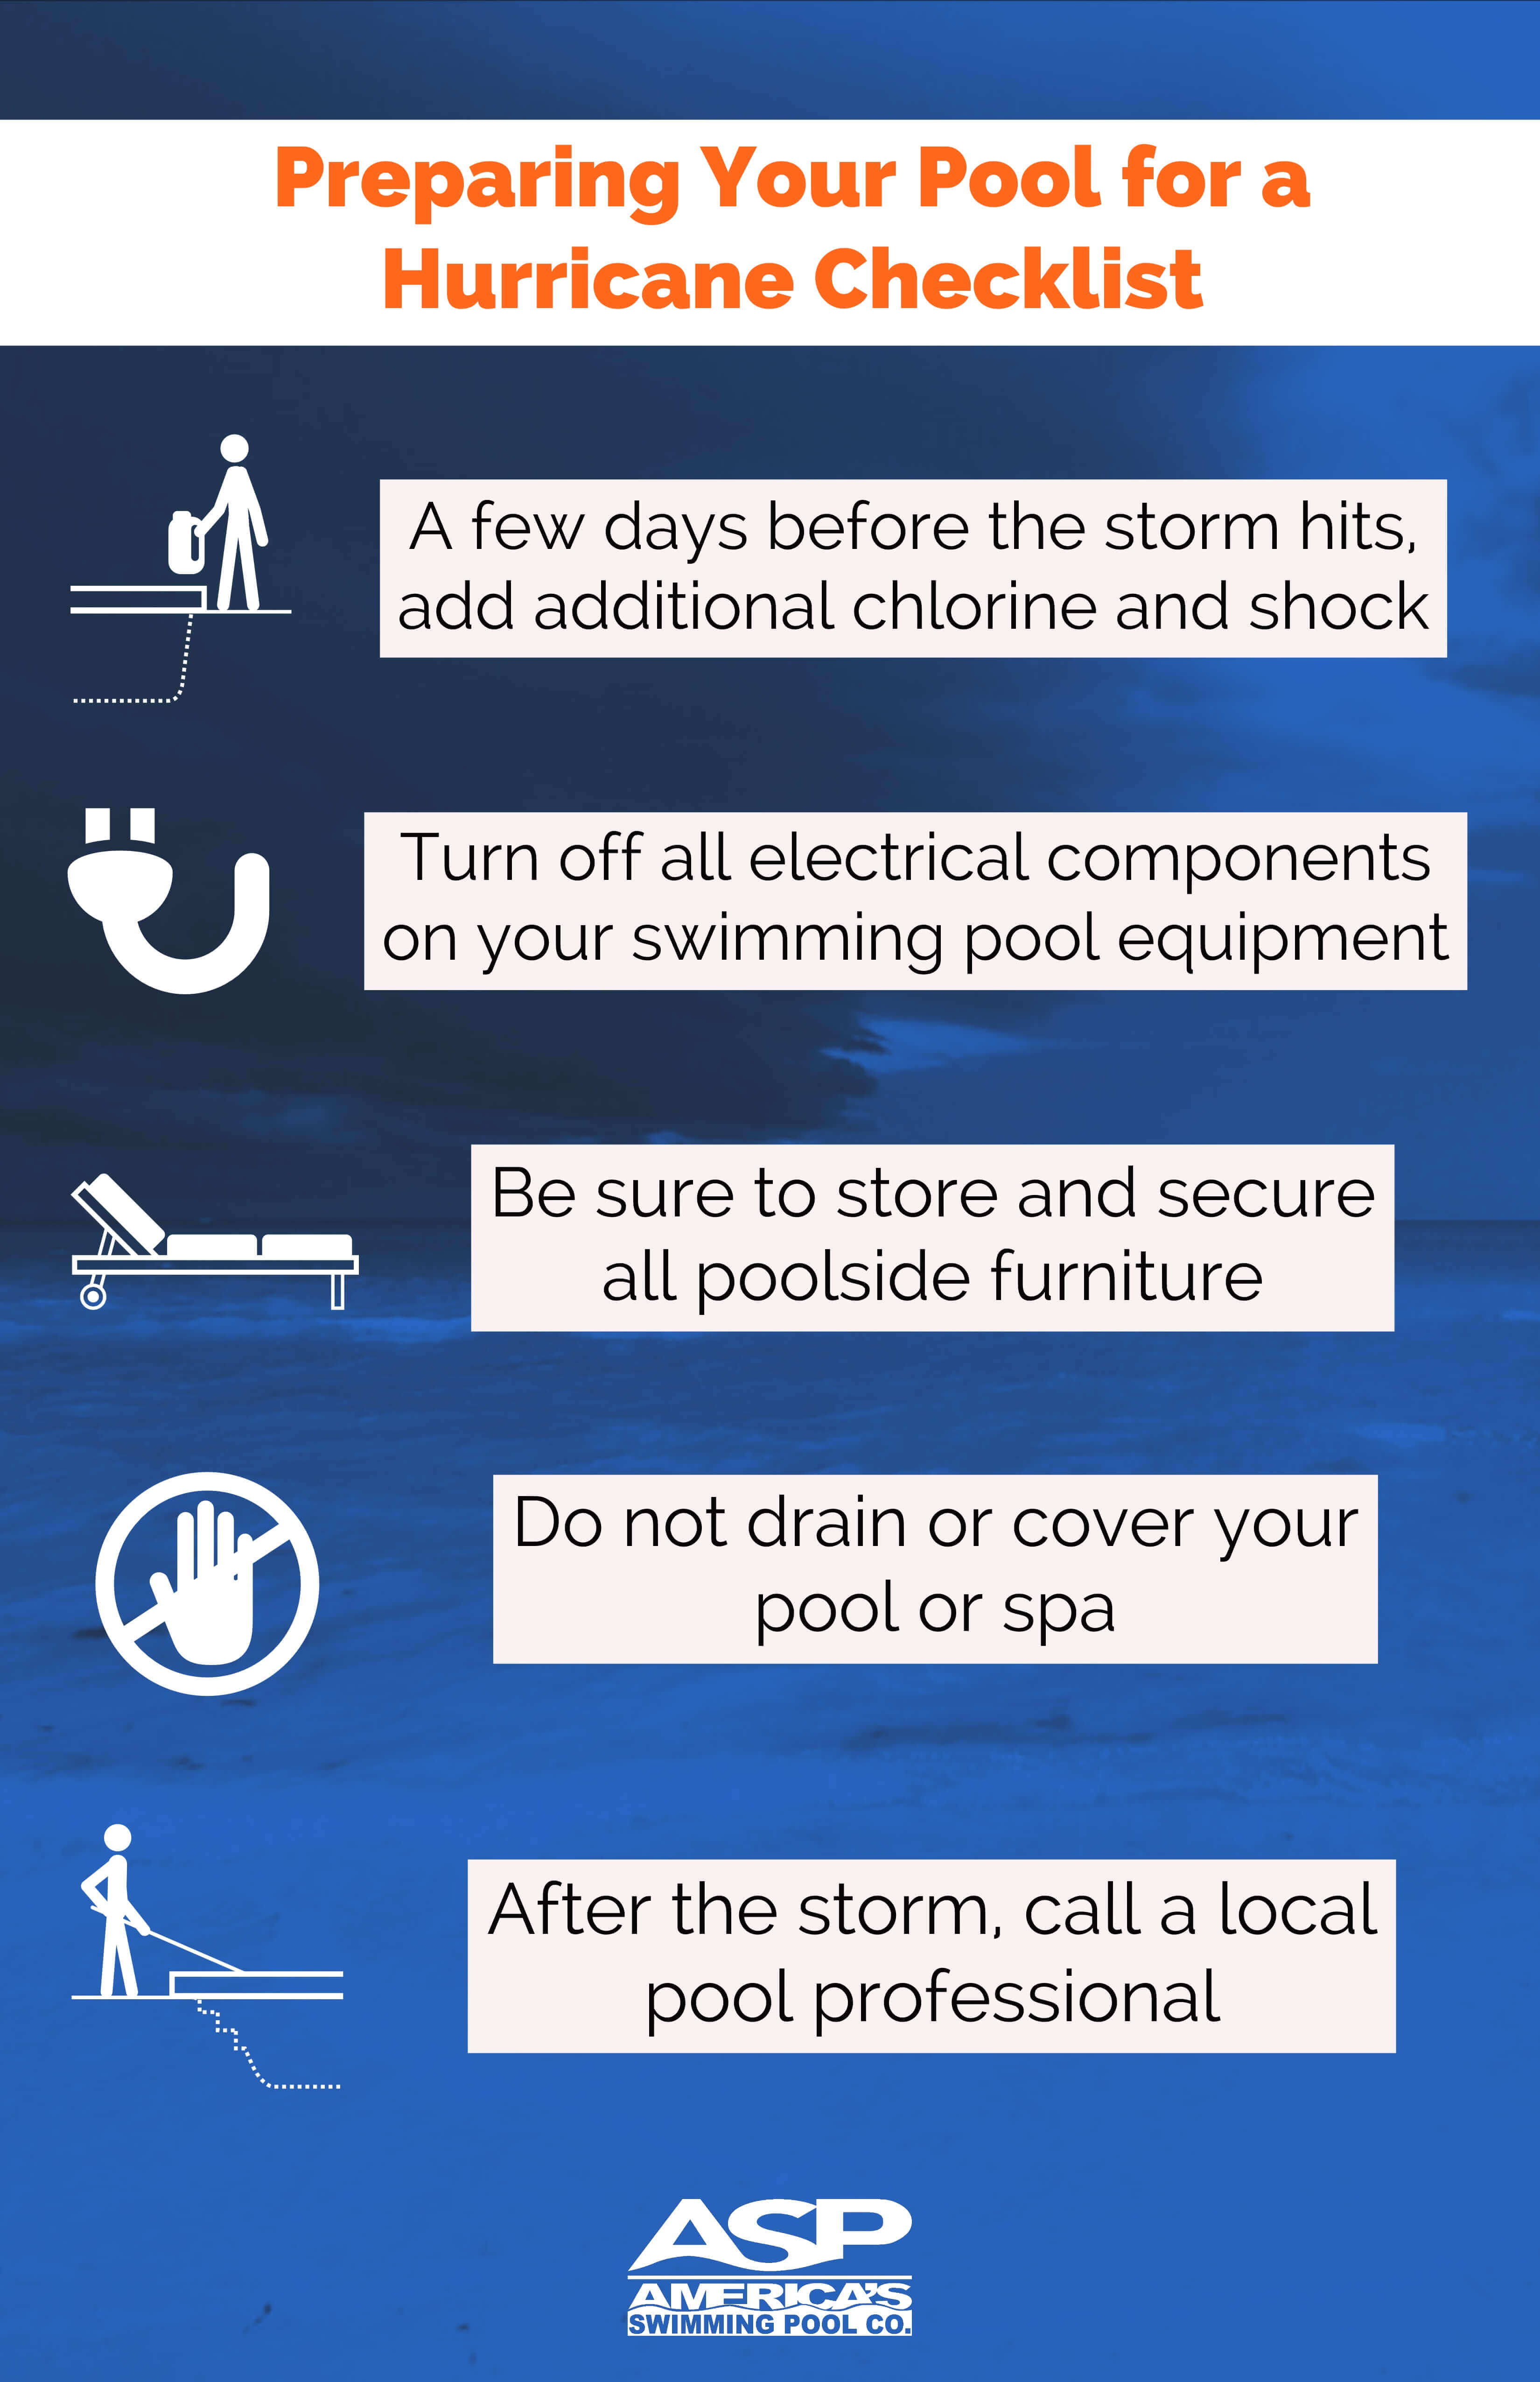 Preparing your pool for a hurricane checklist